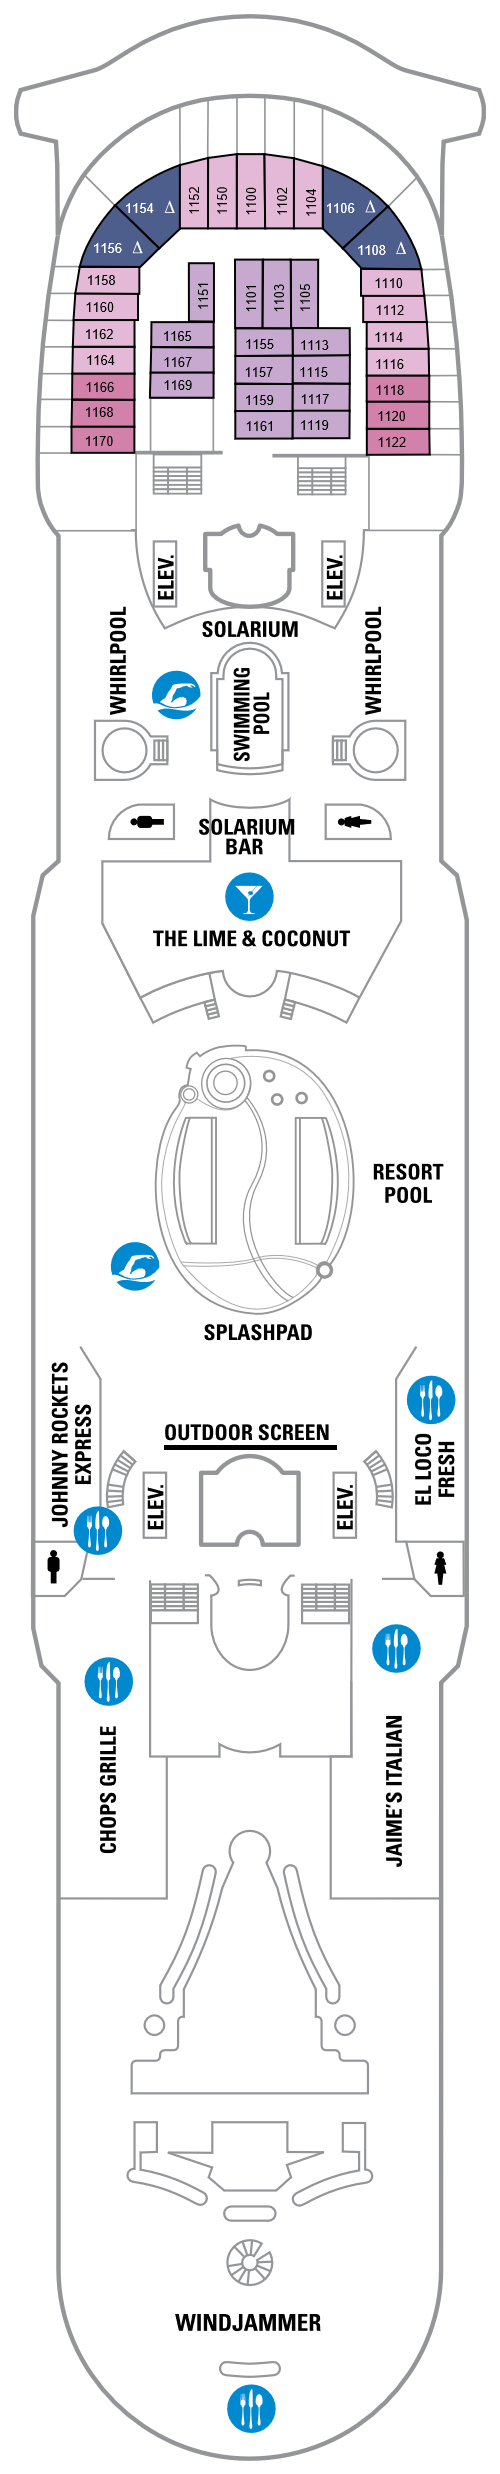 Navigator Of The Seas Deck 11 layout